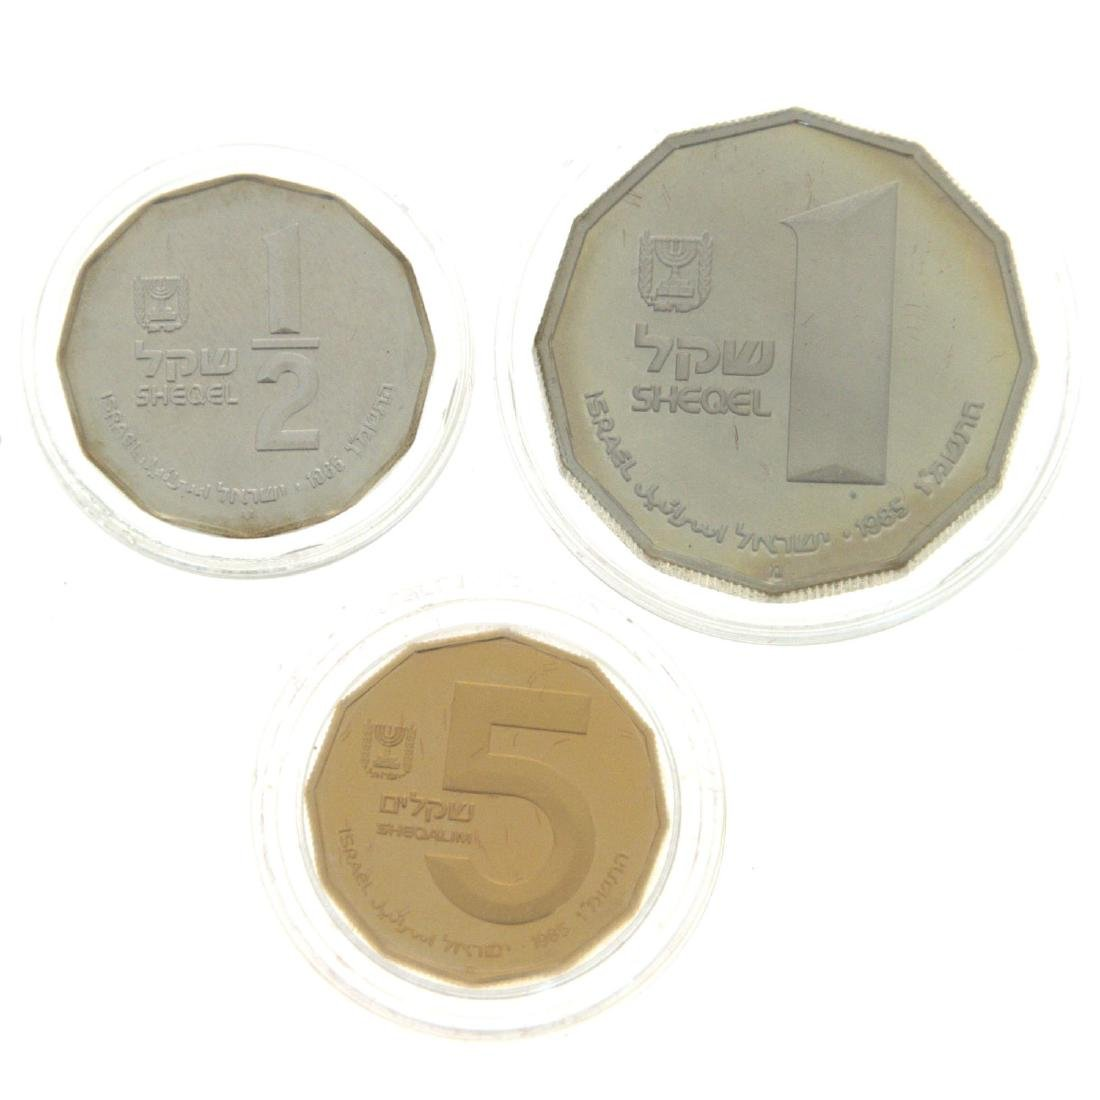 Capernaum Gold and Silver Coin Set.